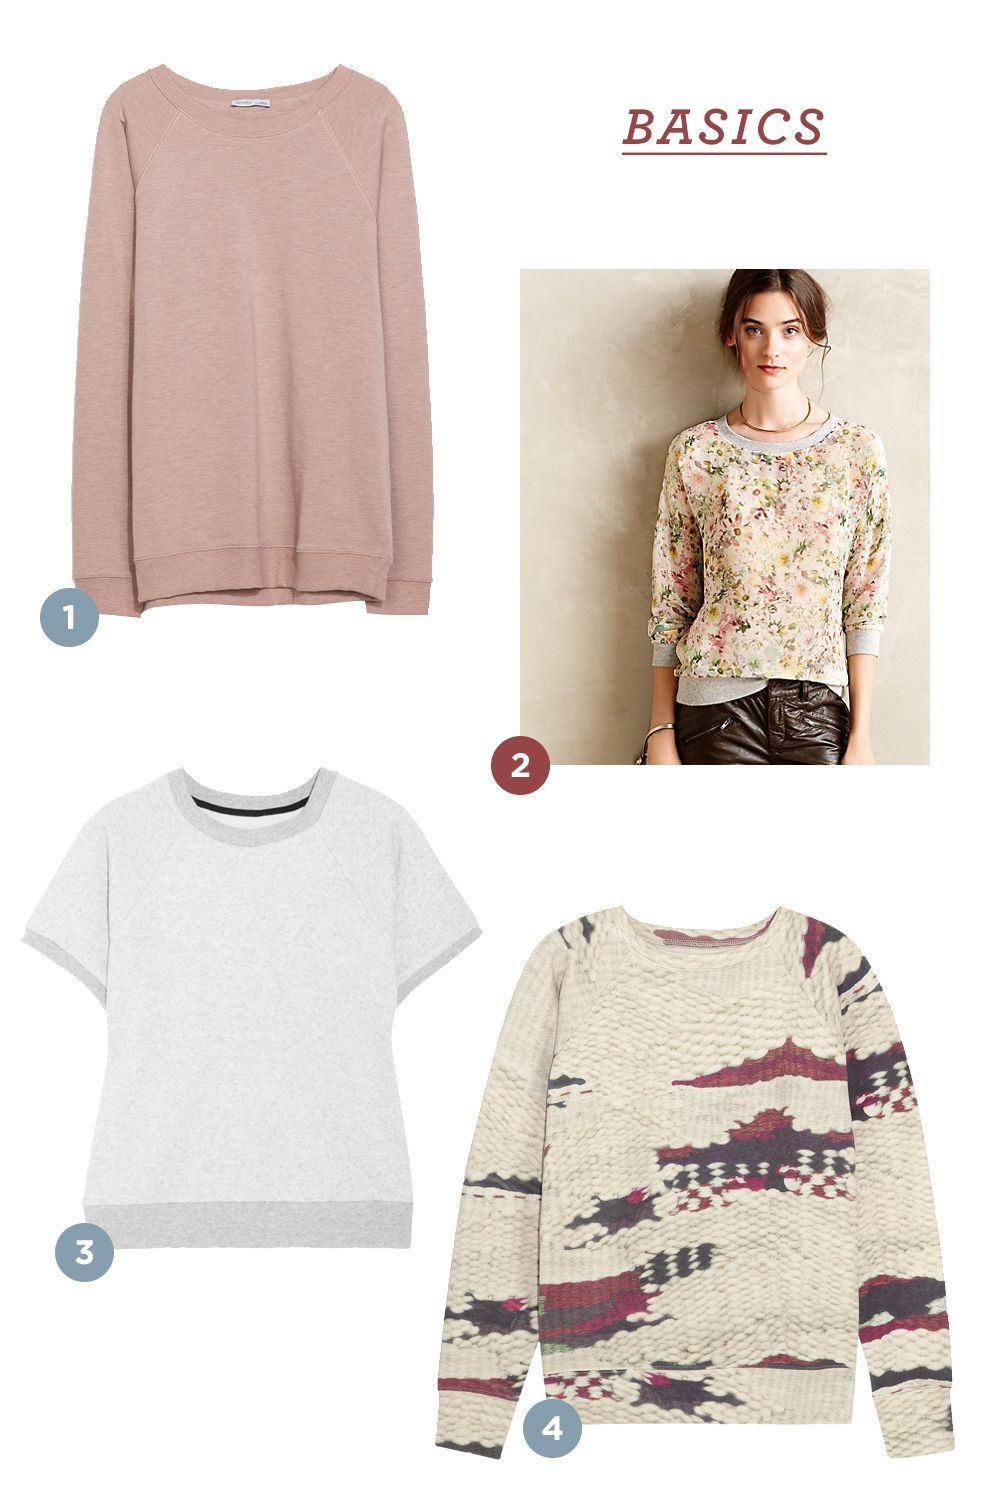 Linden Sweatshirt inspiration for you guys. The great thing about this pattern (and I like to think most of my patterns) is that you can make s...